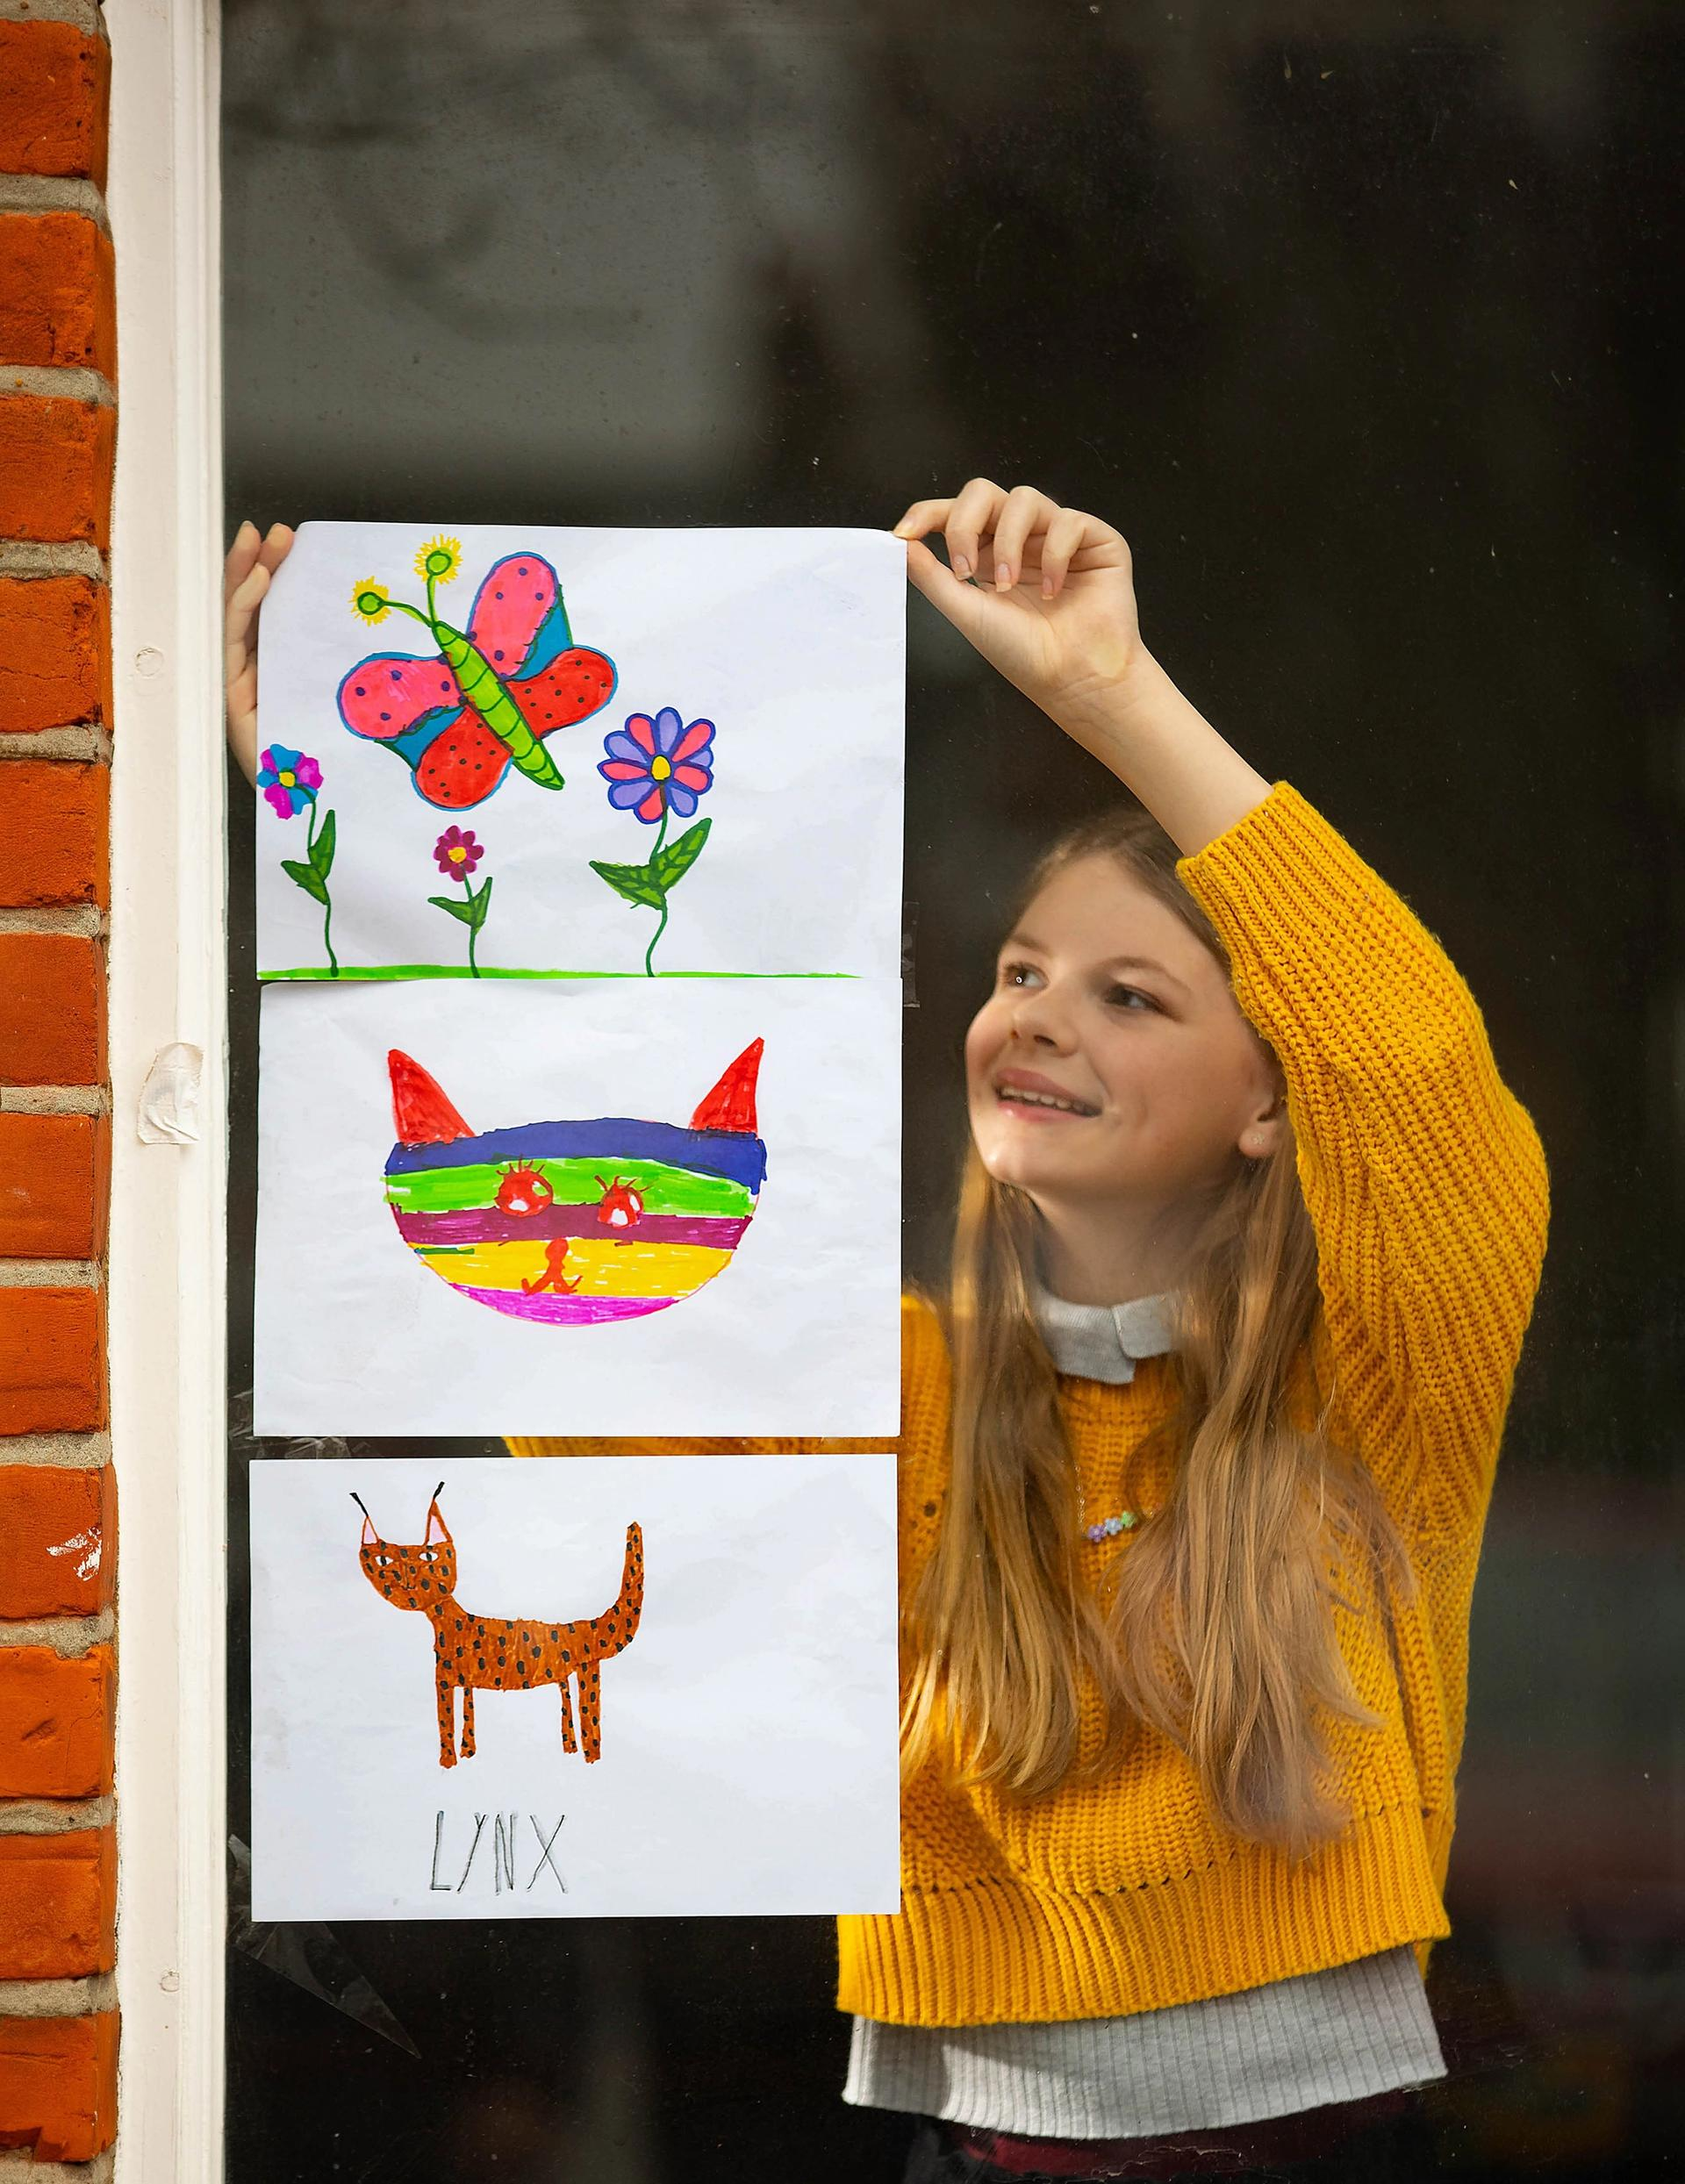 The UK public are invited to place their art in front windows, porches and balconies